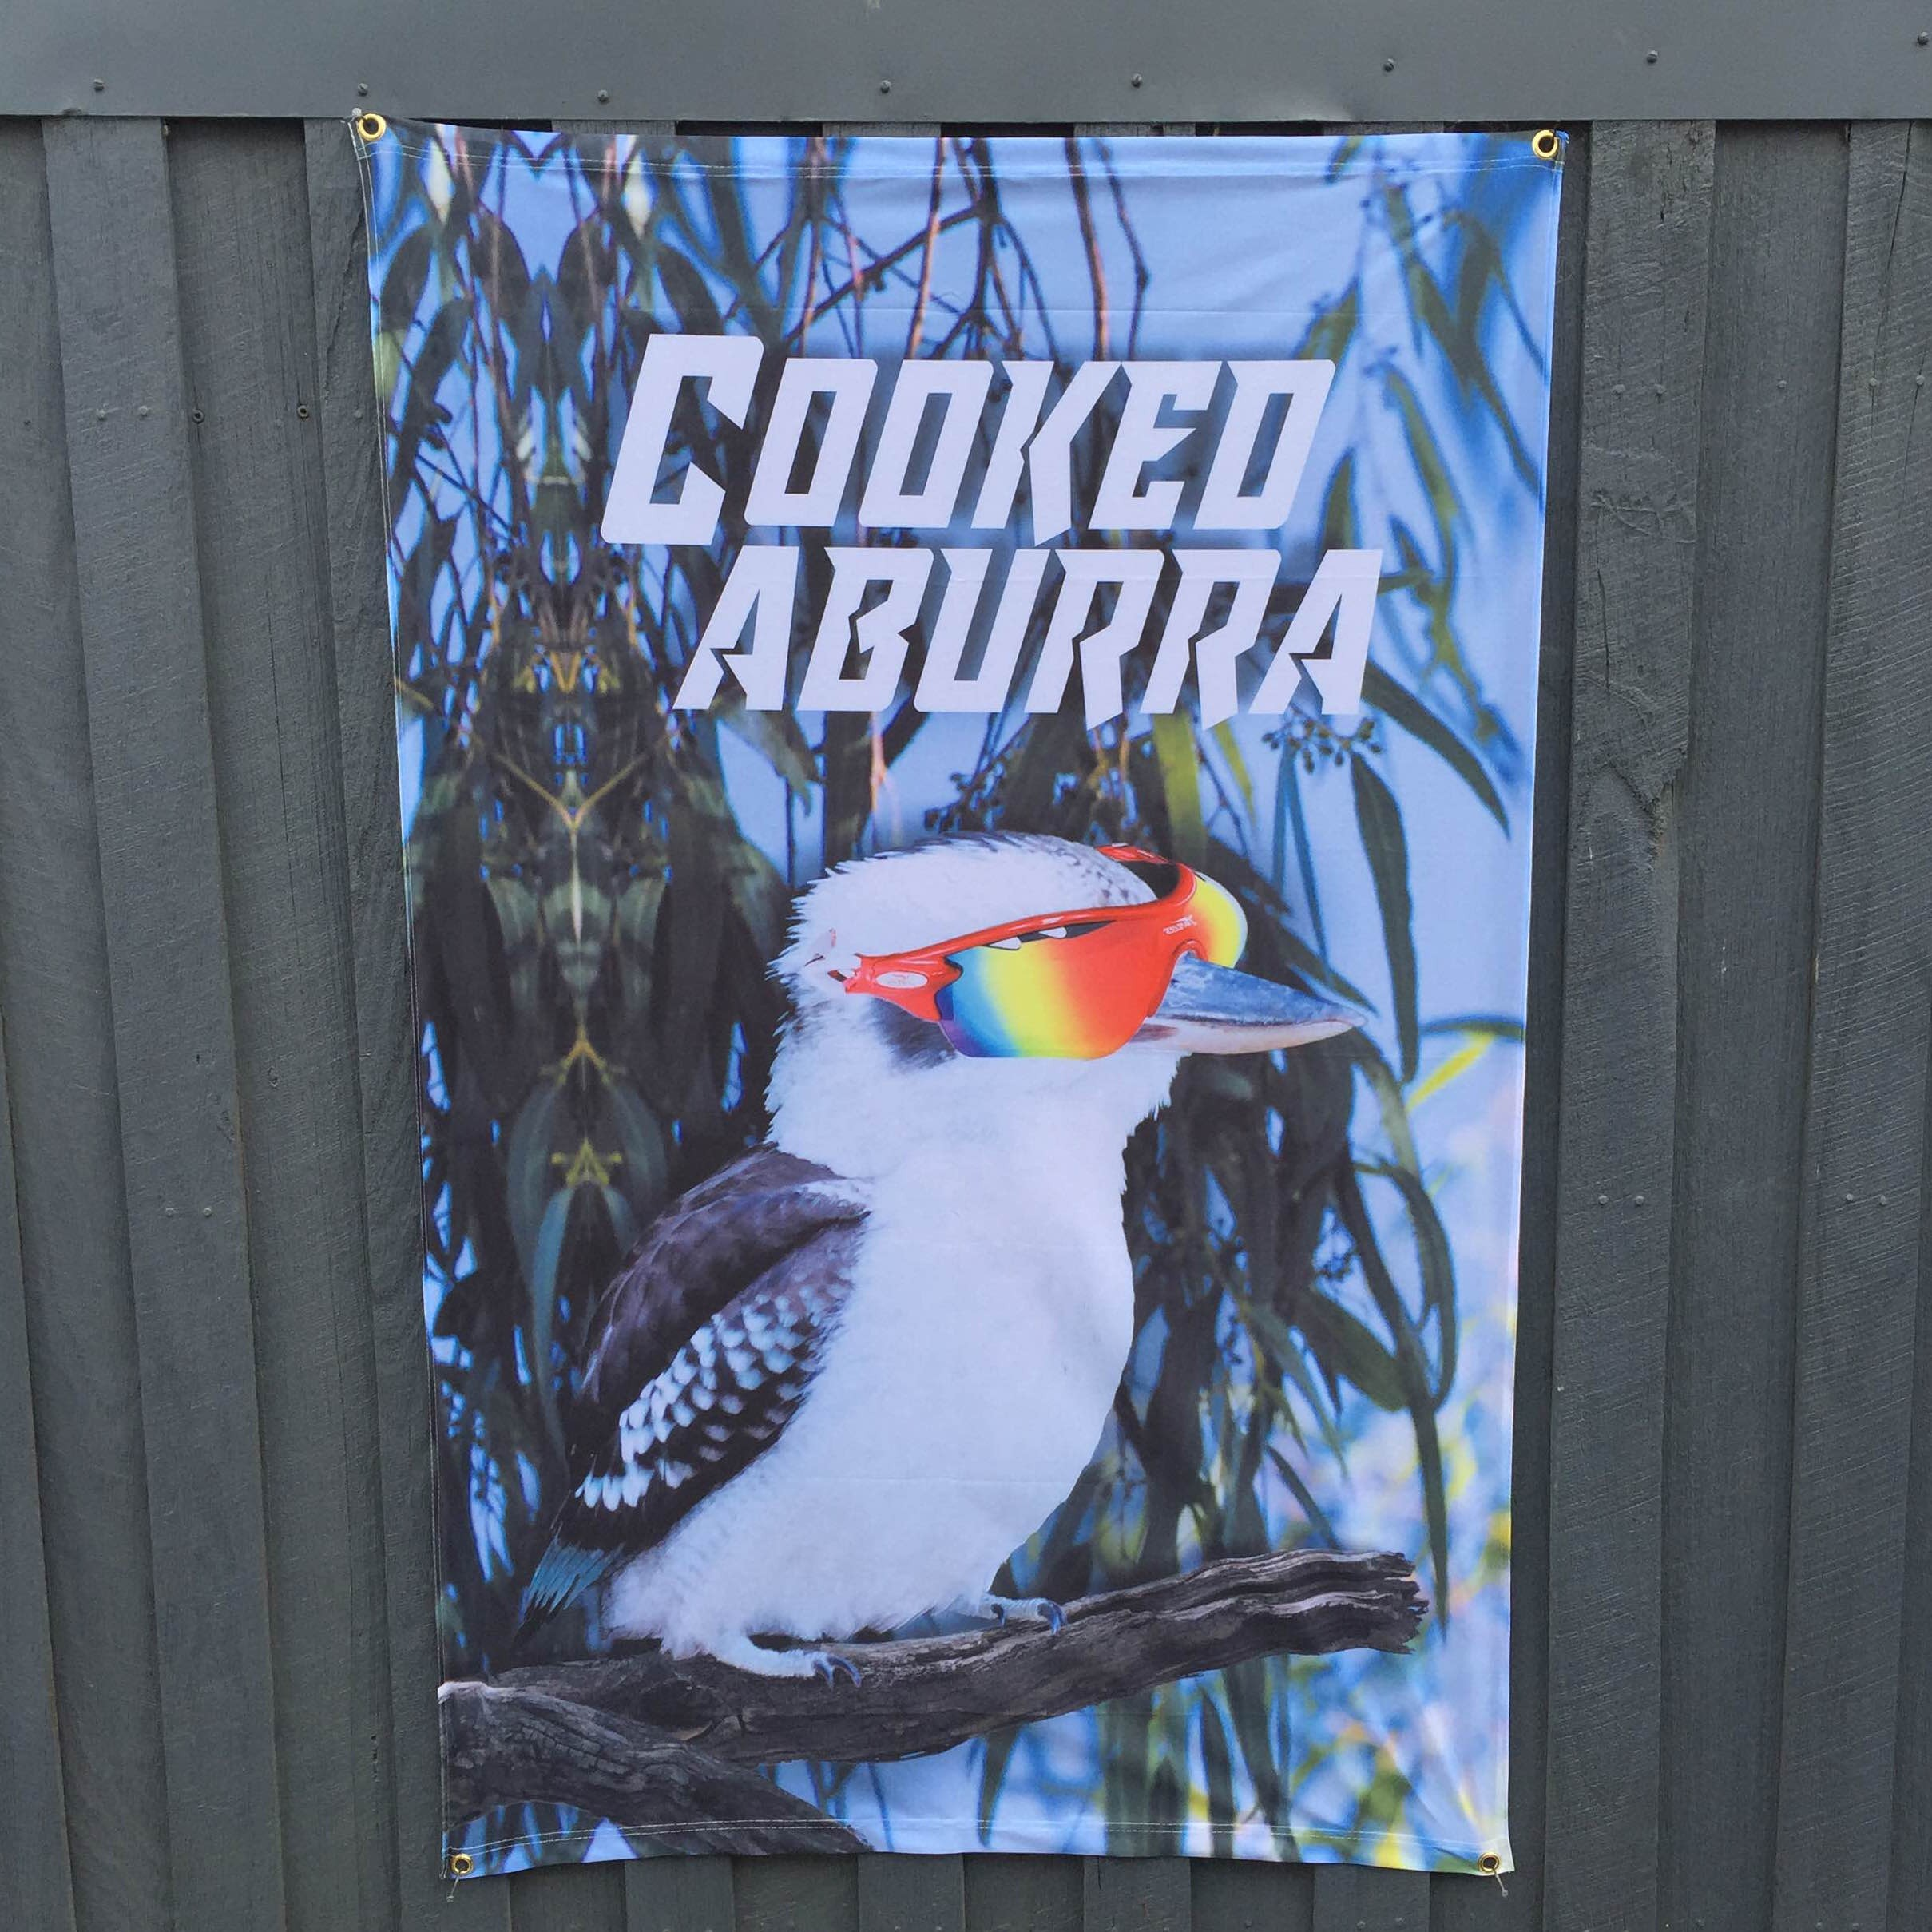 COOKEDABURRA PRINT WALL HANGING 950 X 1500MM